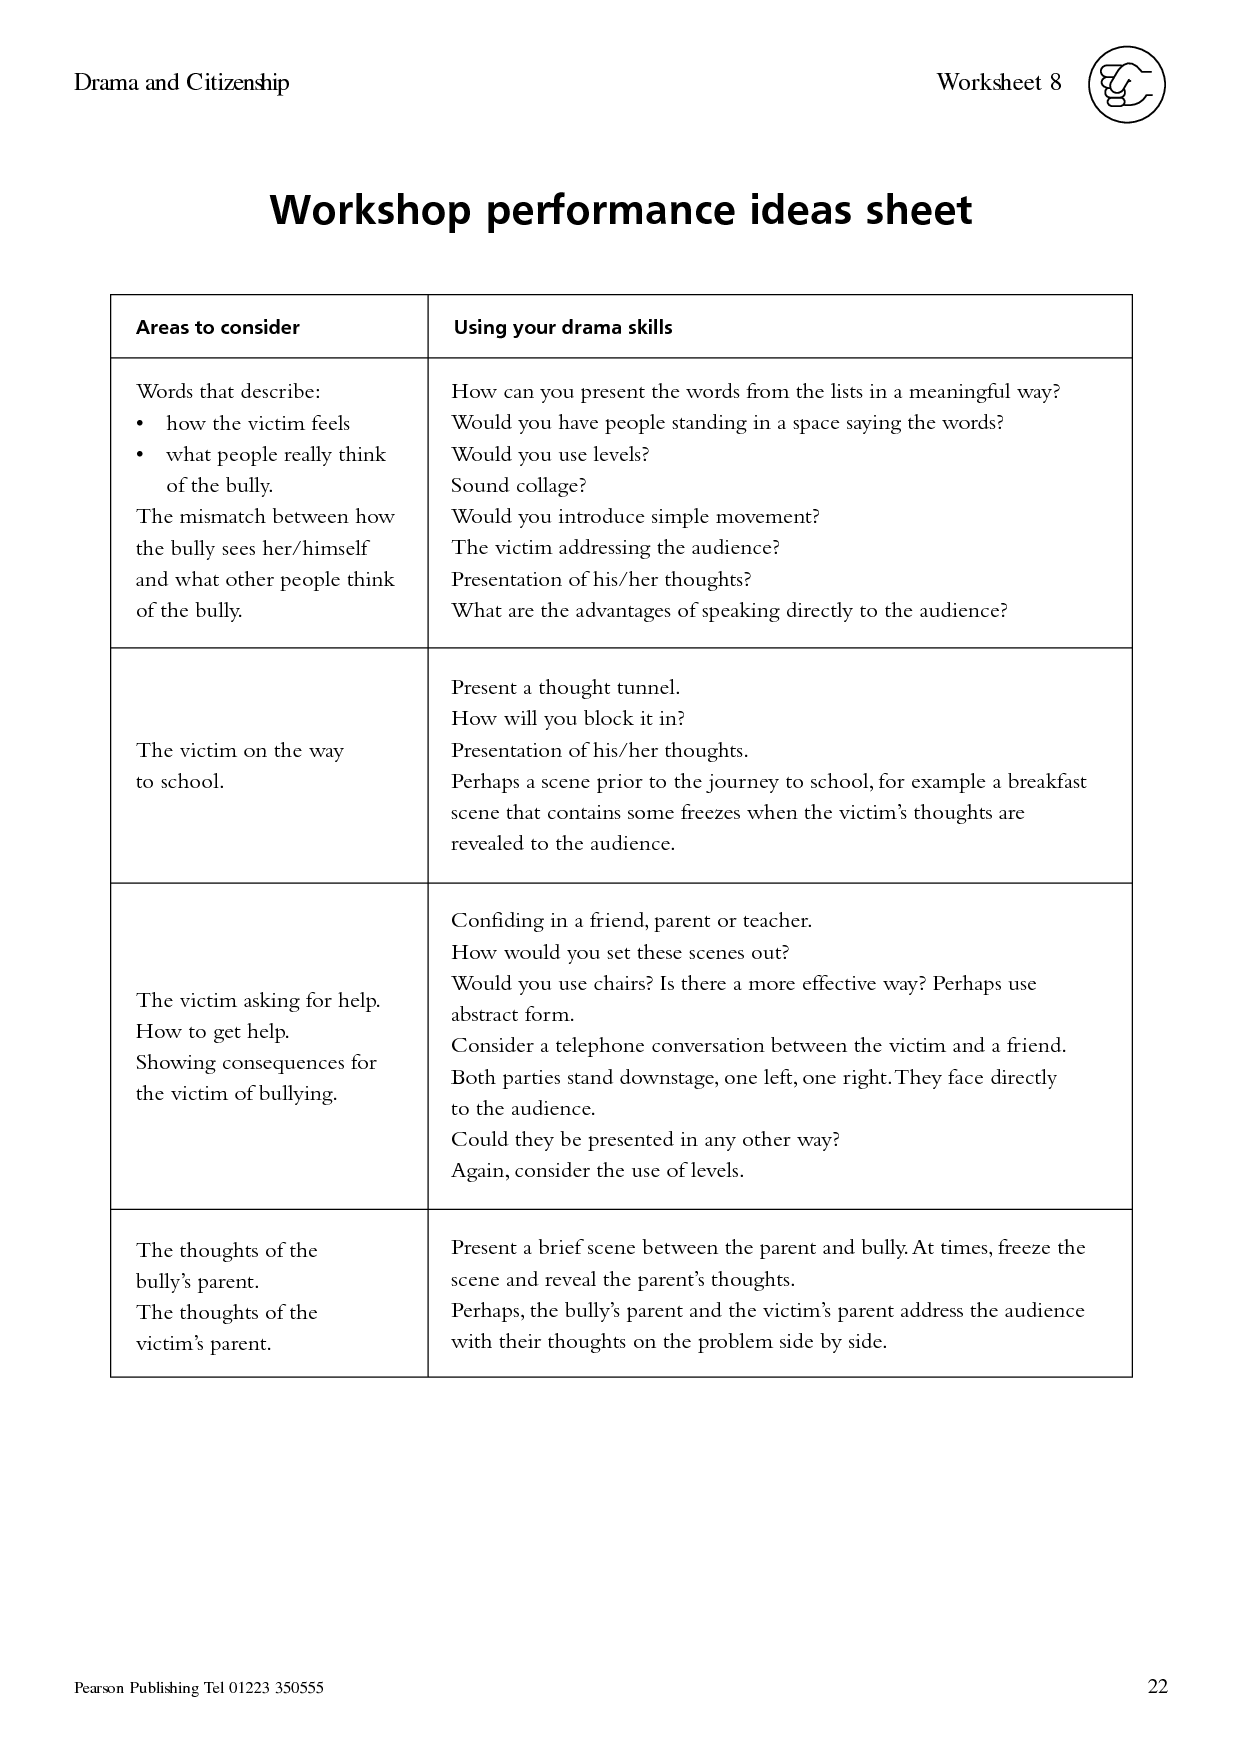 19 Best Images Of Drama Vocabulary Worksheets